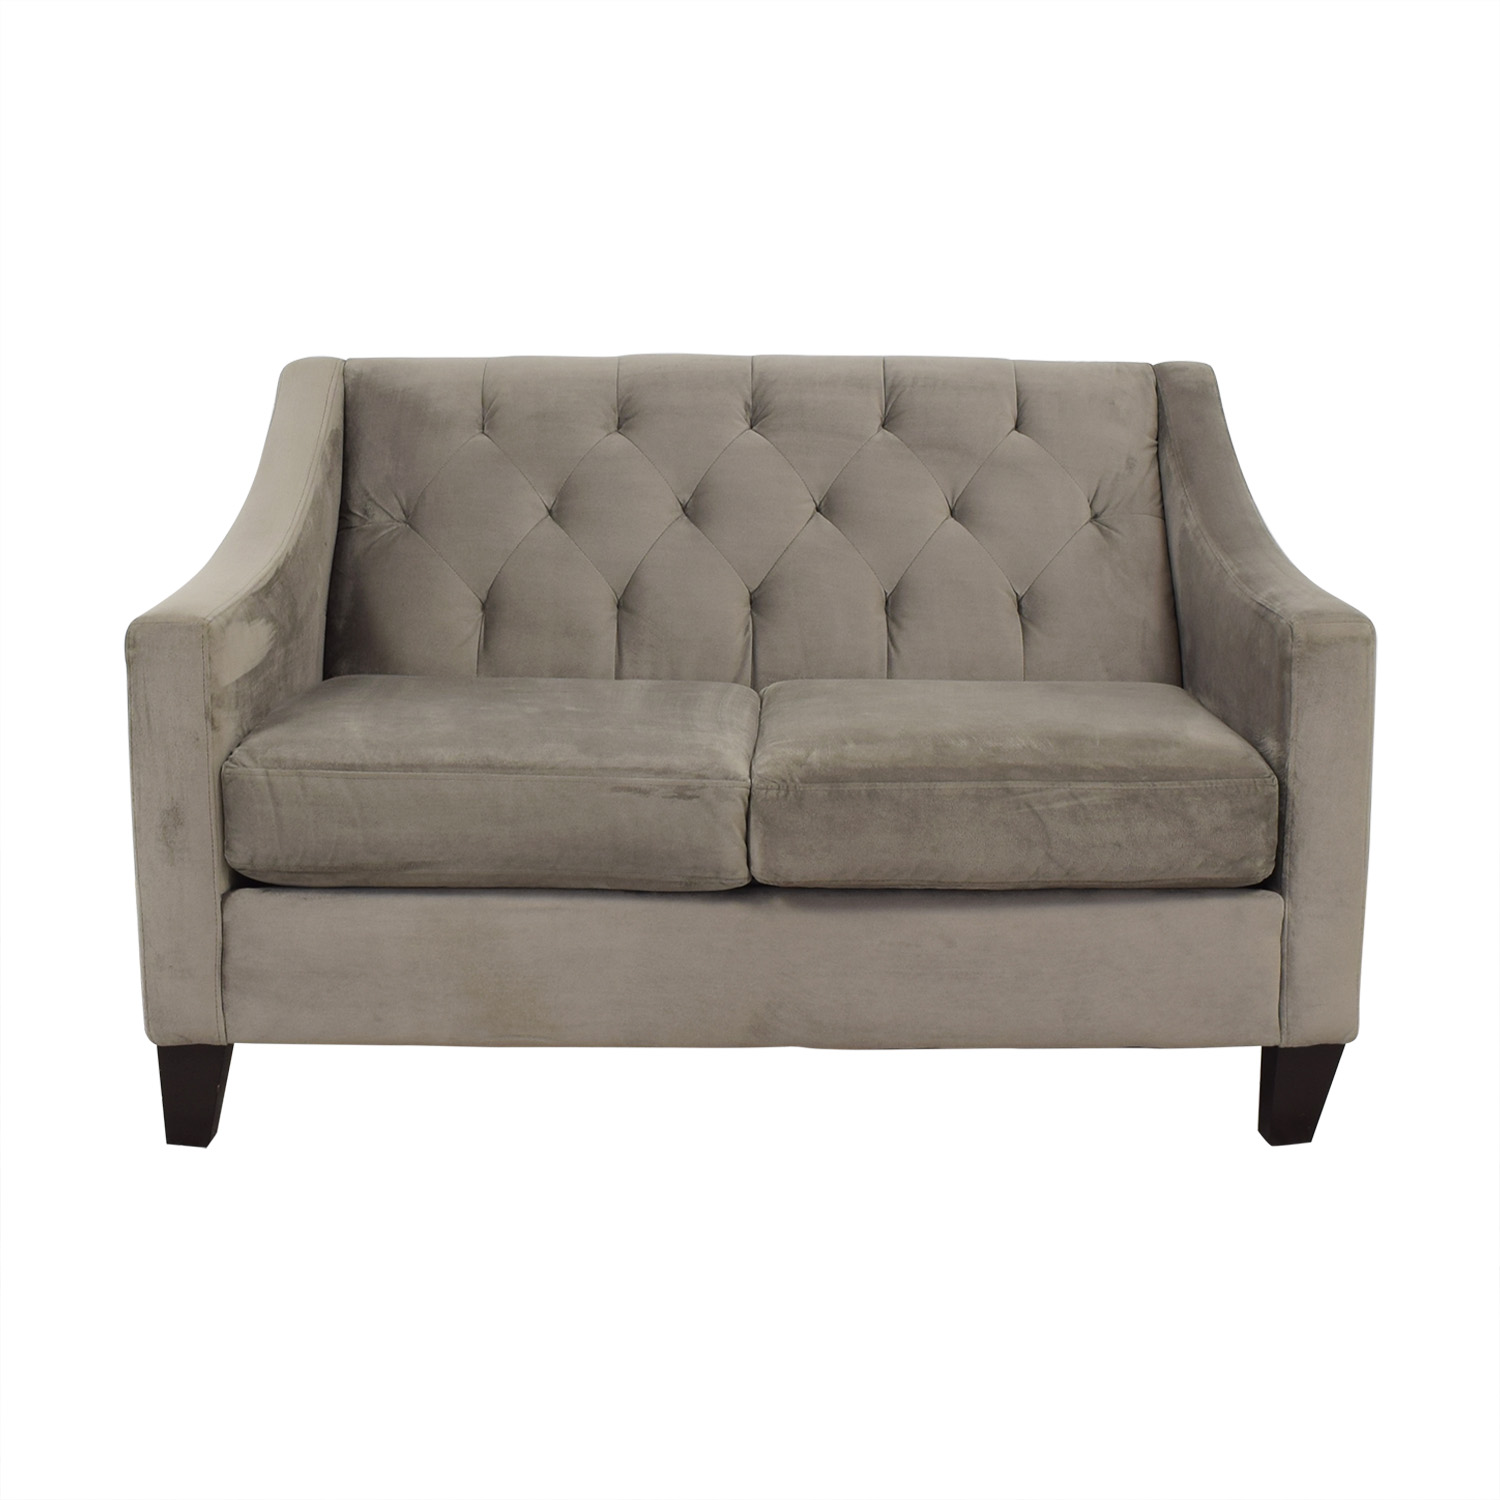 Macy's Macy's Chloe Tufted Loveseat on sale